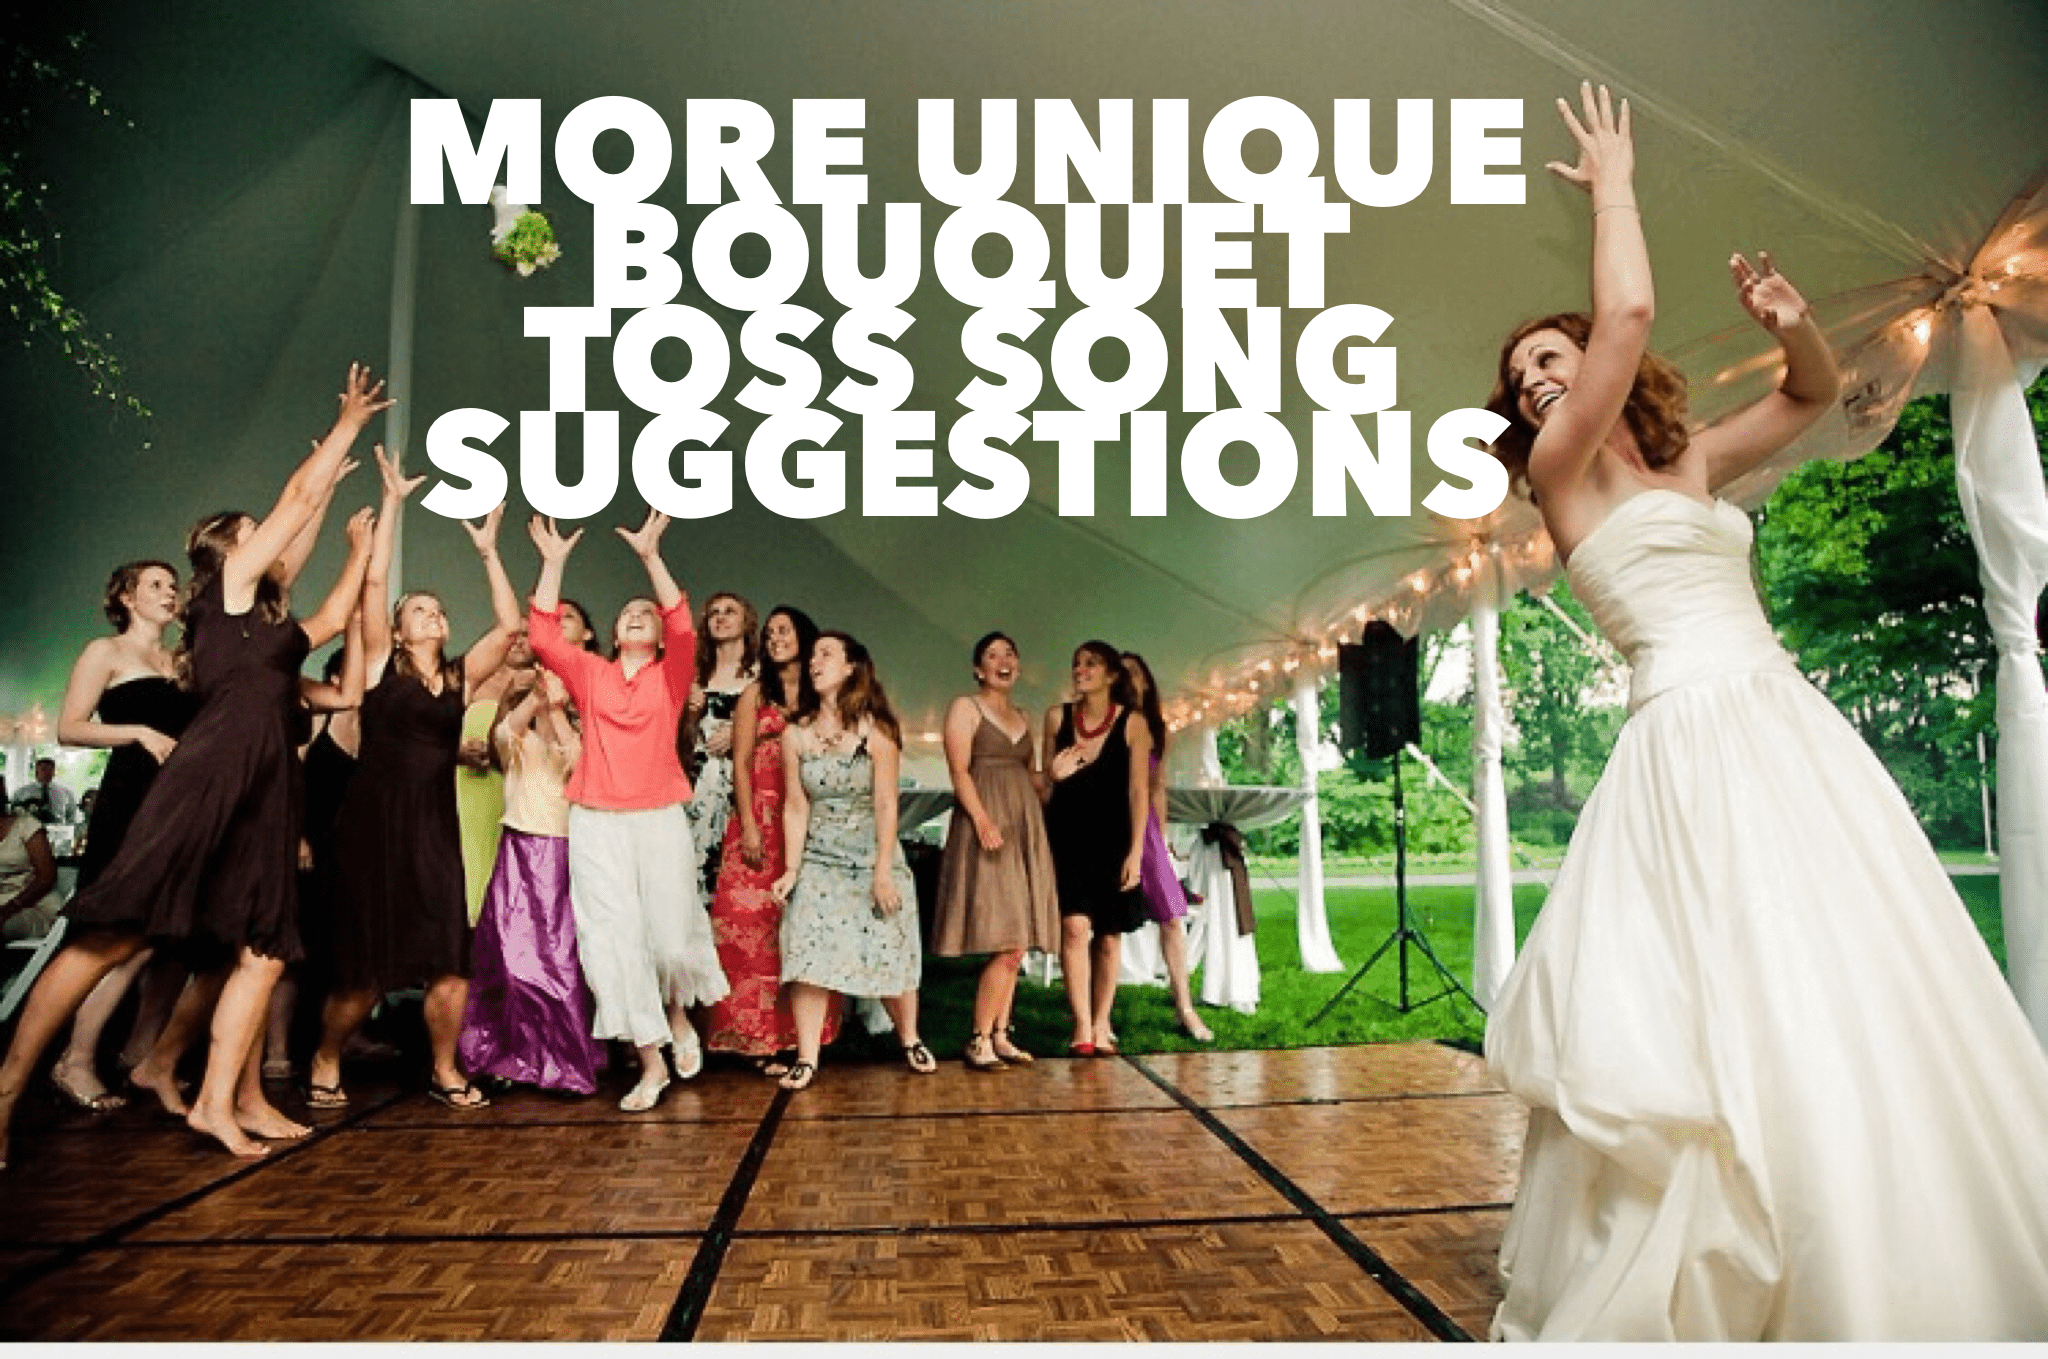 More Unique Bouquet Toss Songs Suggestions | Bunn DJ Company